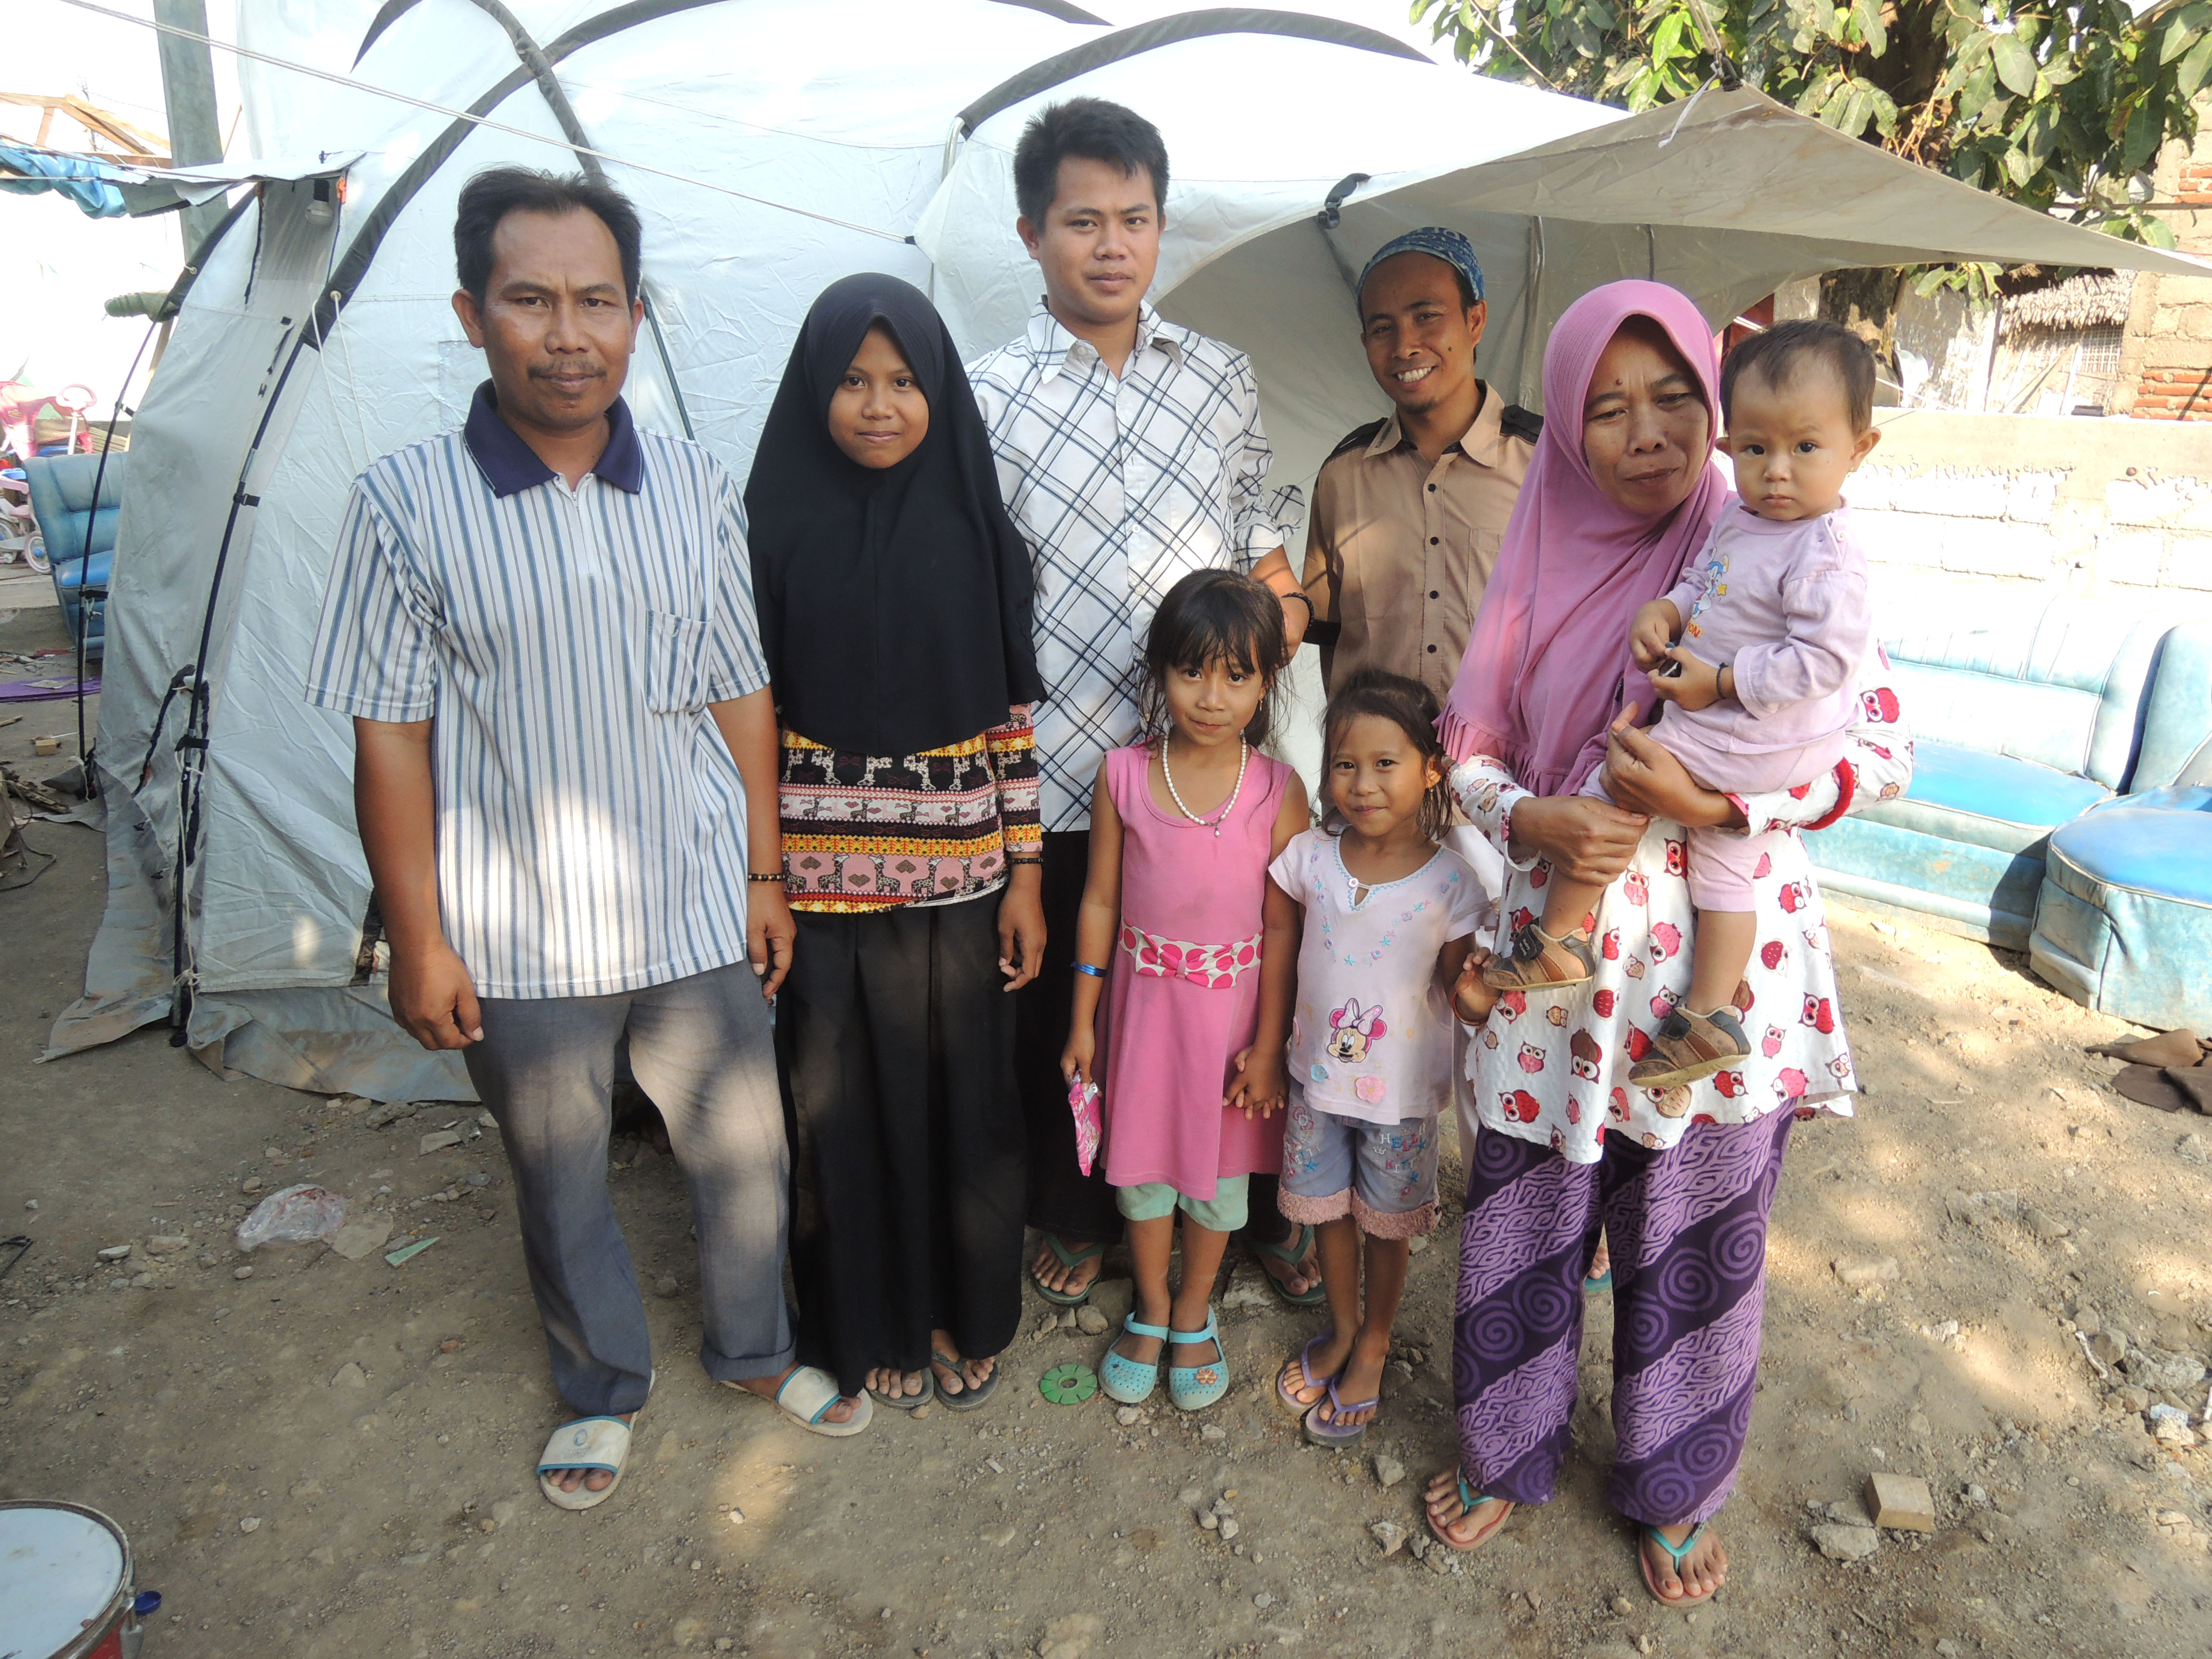 Ahmed and his children with their tent.